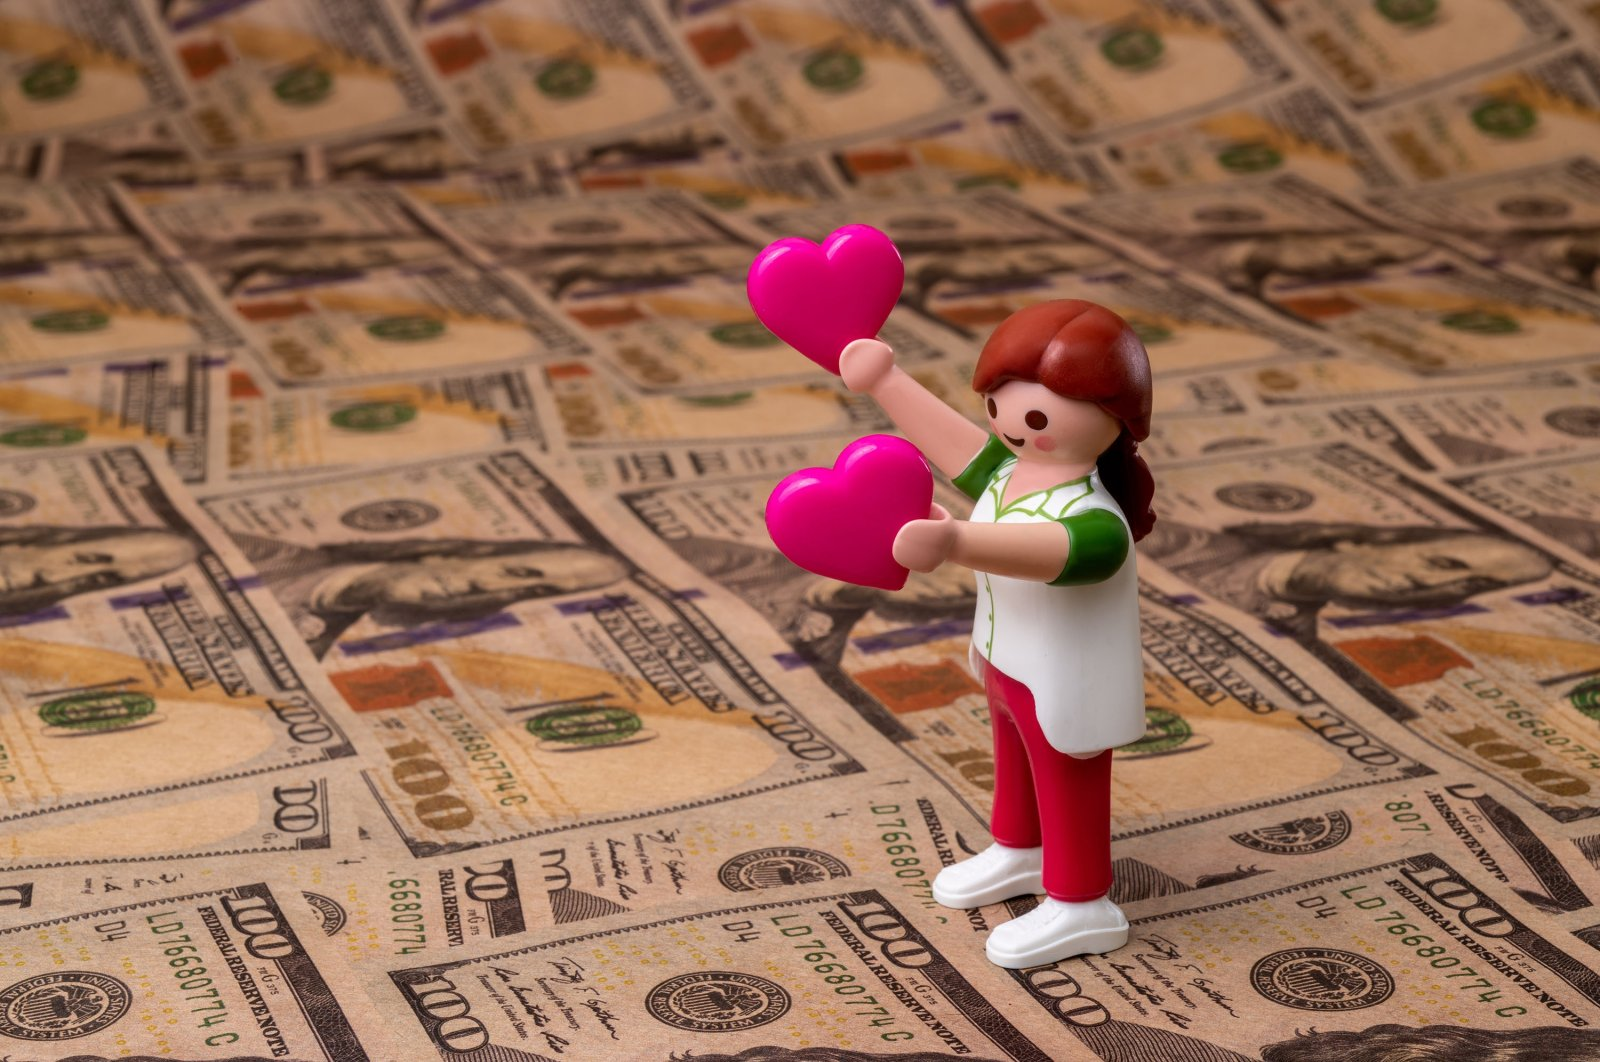 A plastic figurine of a woman holds in each hand a pink heart symbol against a background of American dollar bills. (Shutterstock Photo)